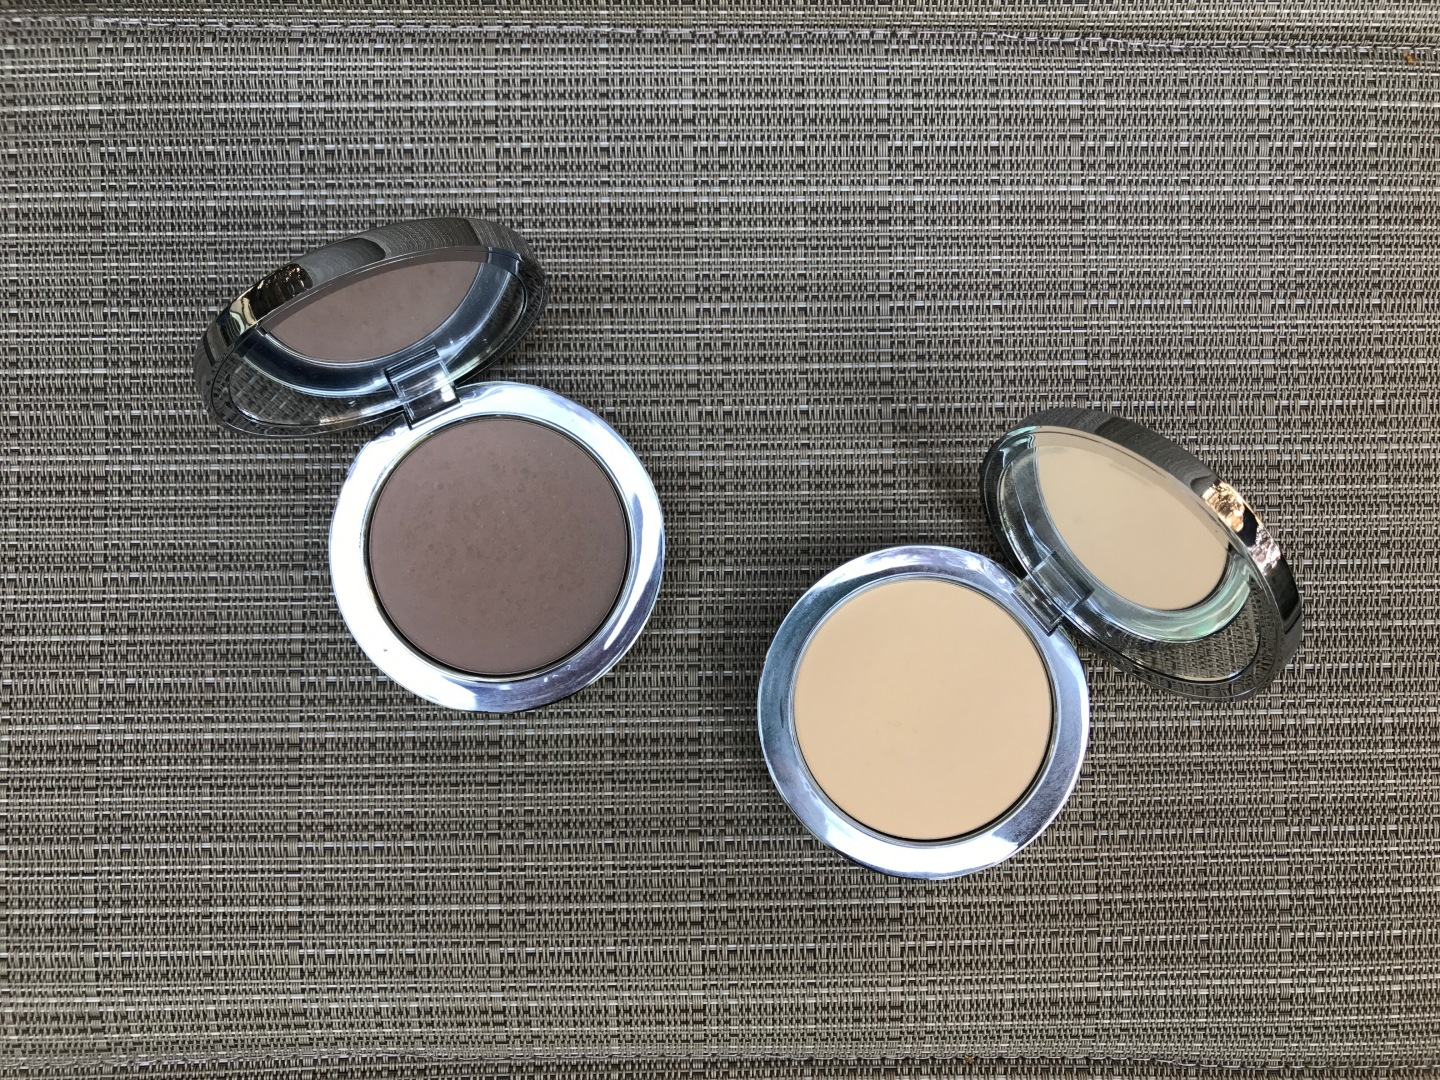 Rodial Instaglam Compact Deluxe Banana Powder And